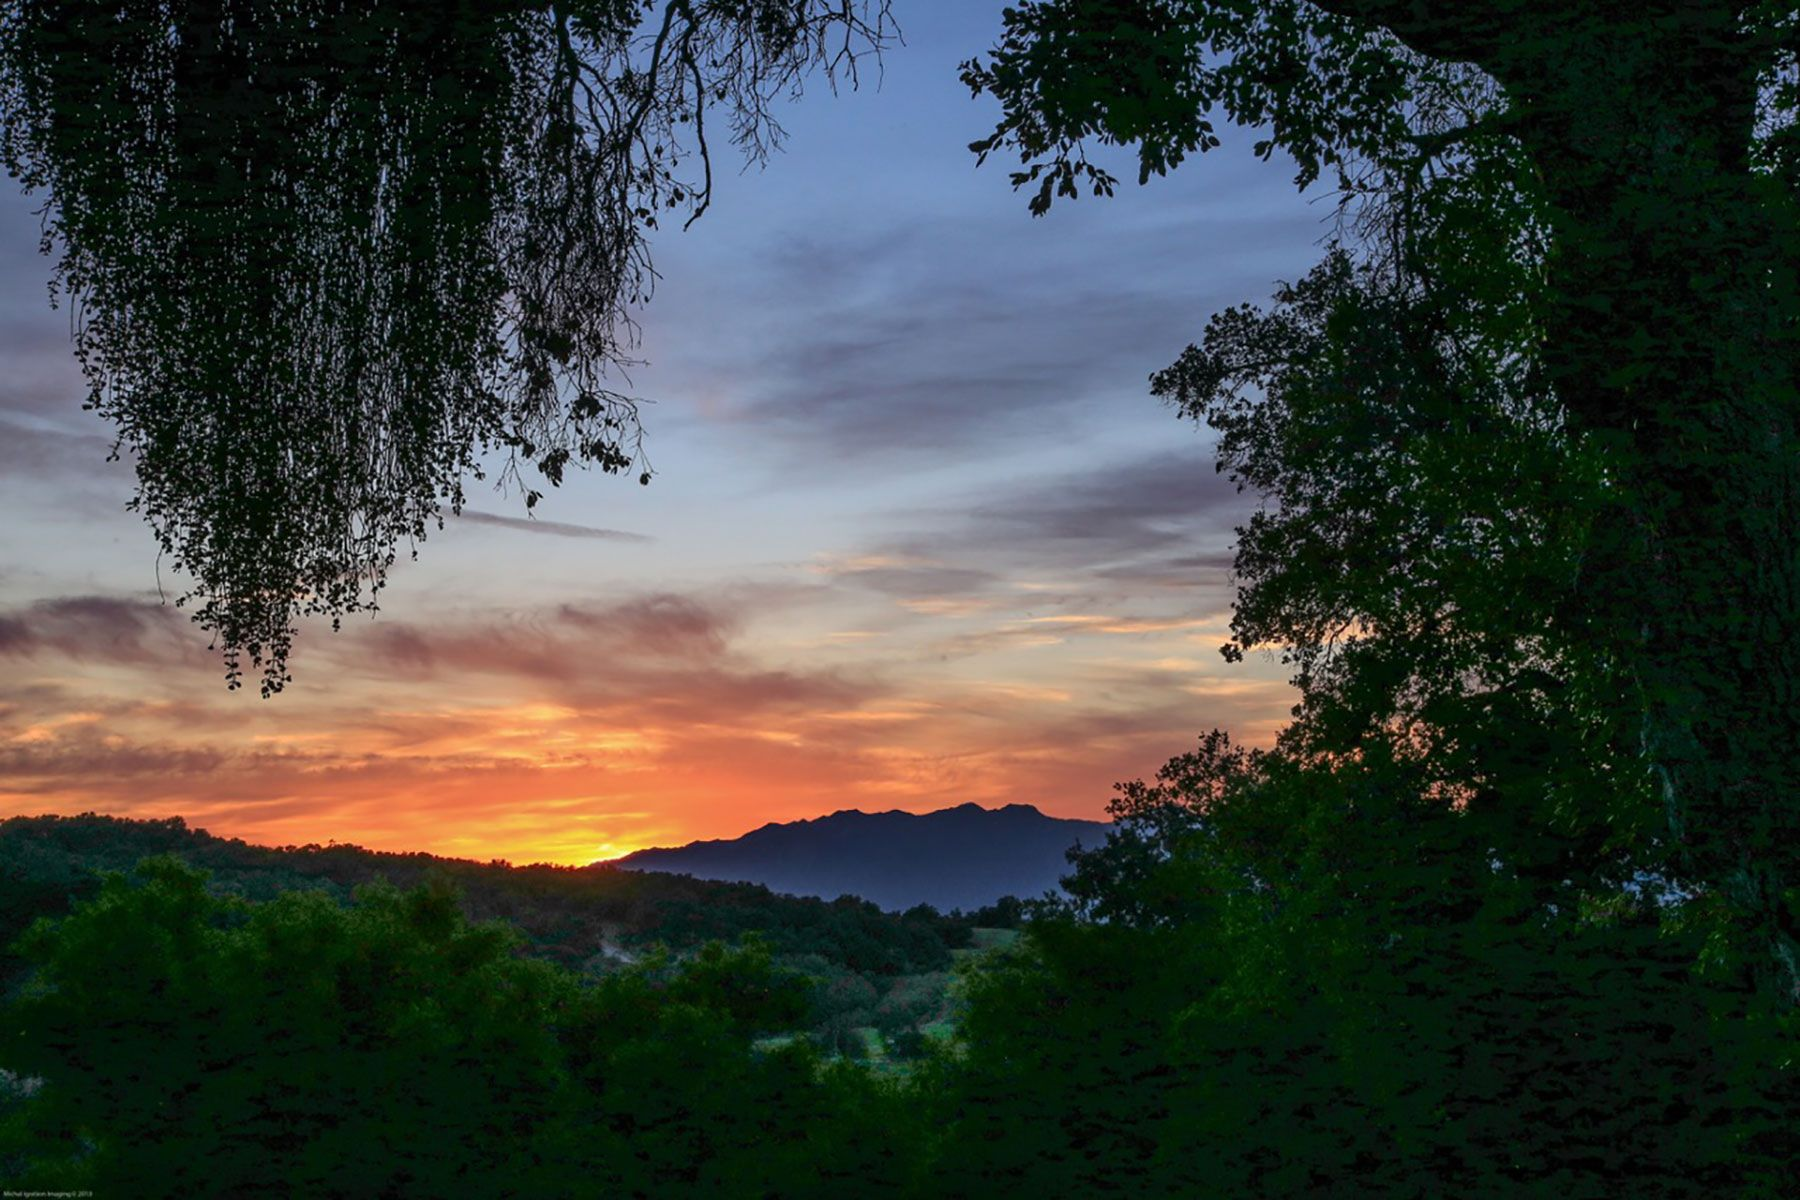 Land for Sale at 13500 Sulphur Mountain Rd. Ojai, California 93023 United States